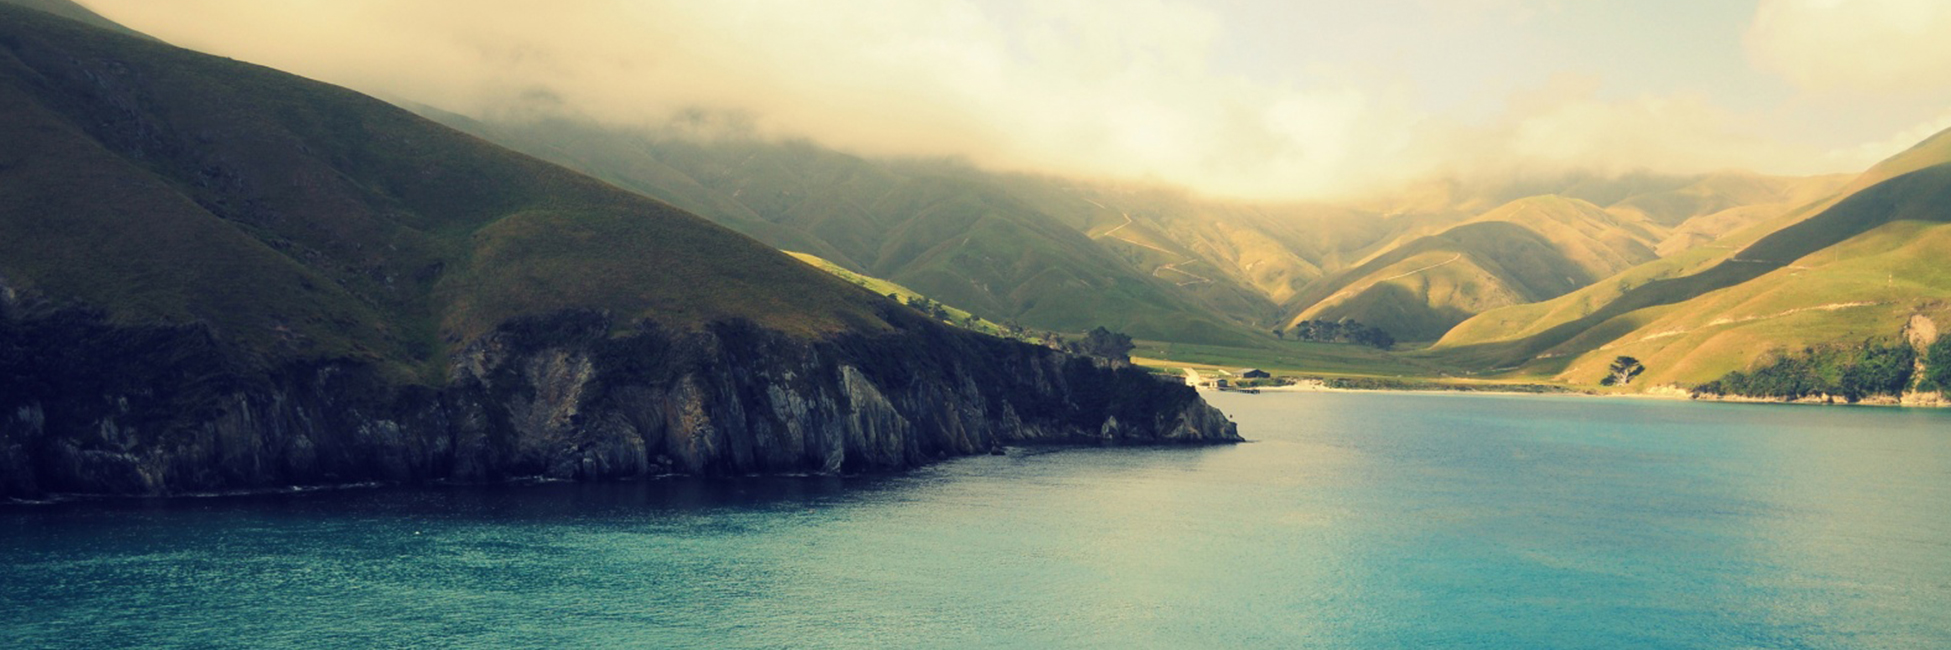 Holidaying-In-New-Zealand